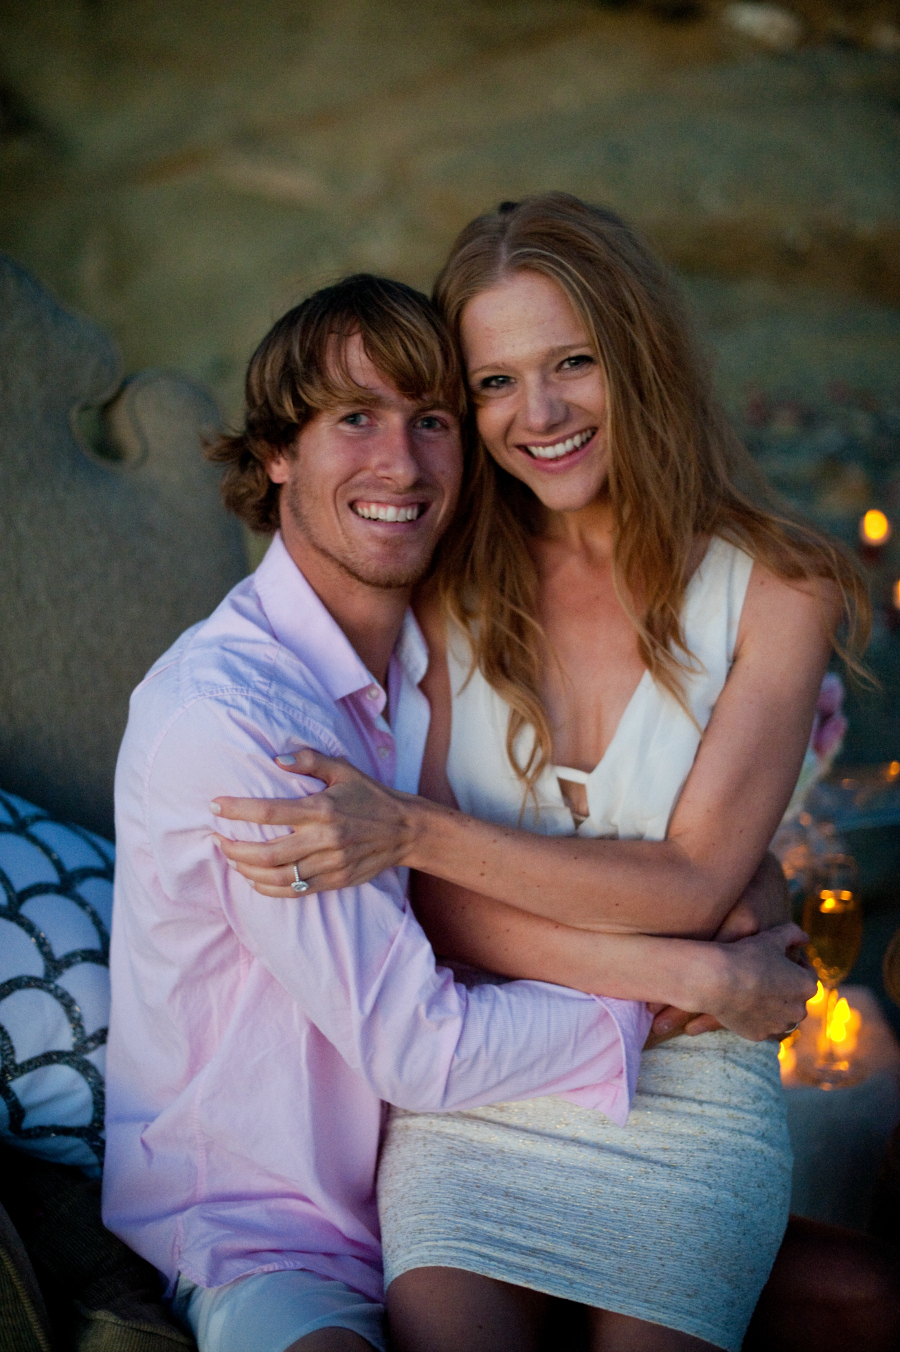 Image 1 of Erin and Daniel | Laguna Beach Proposal